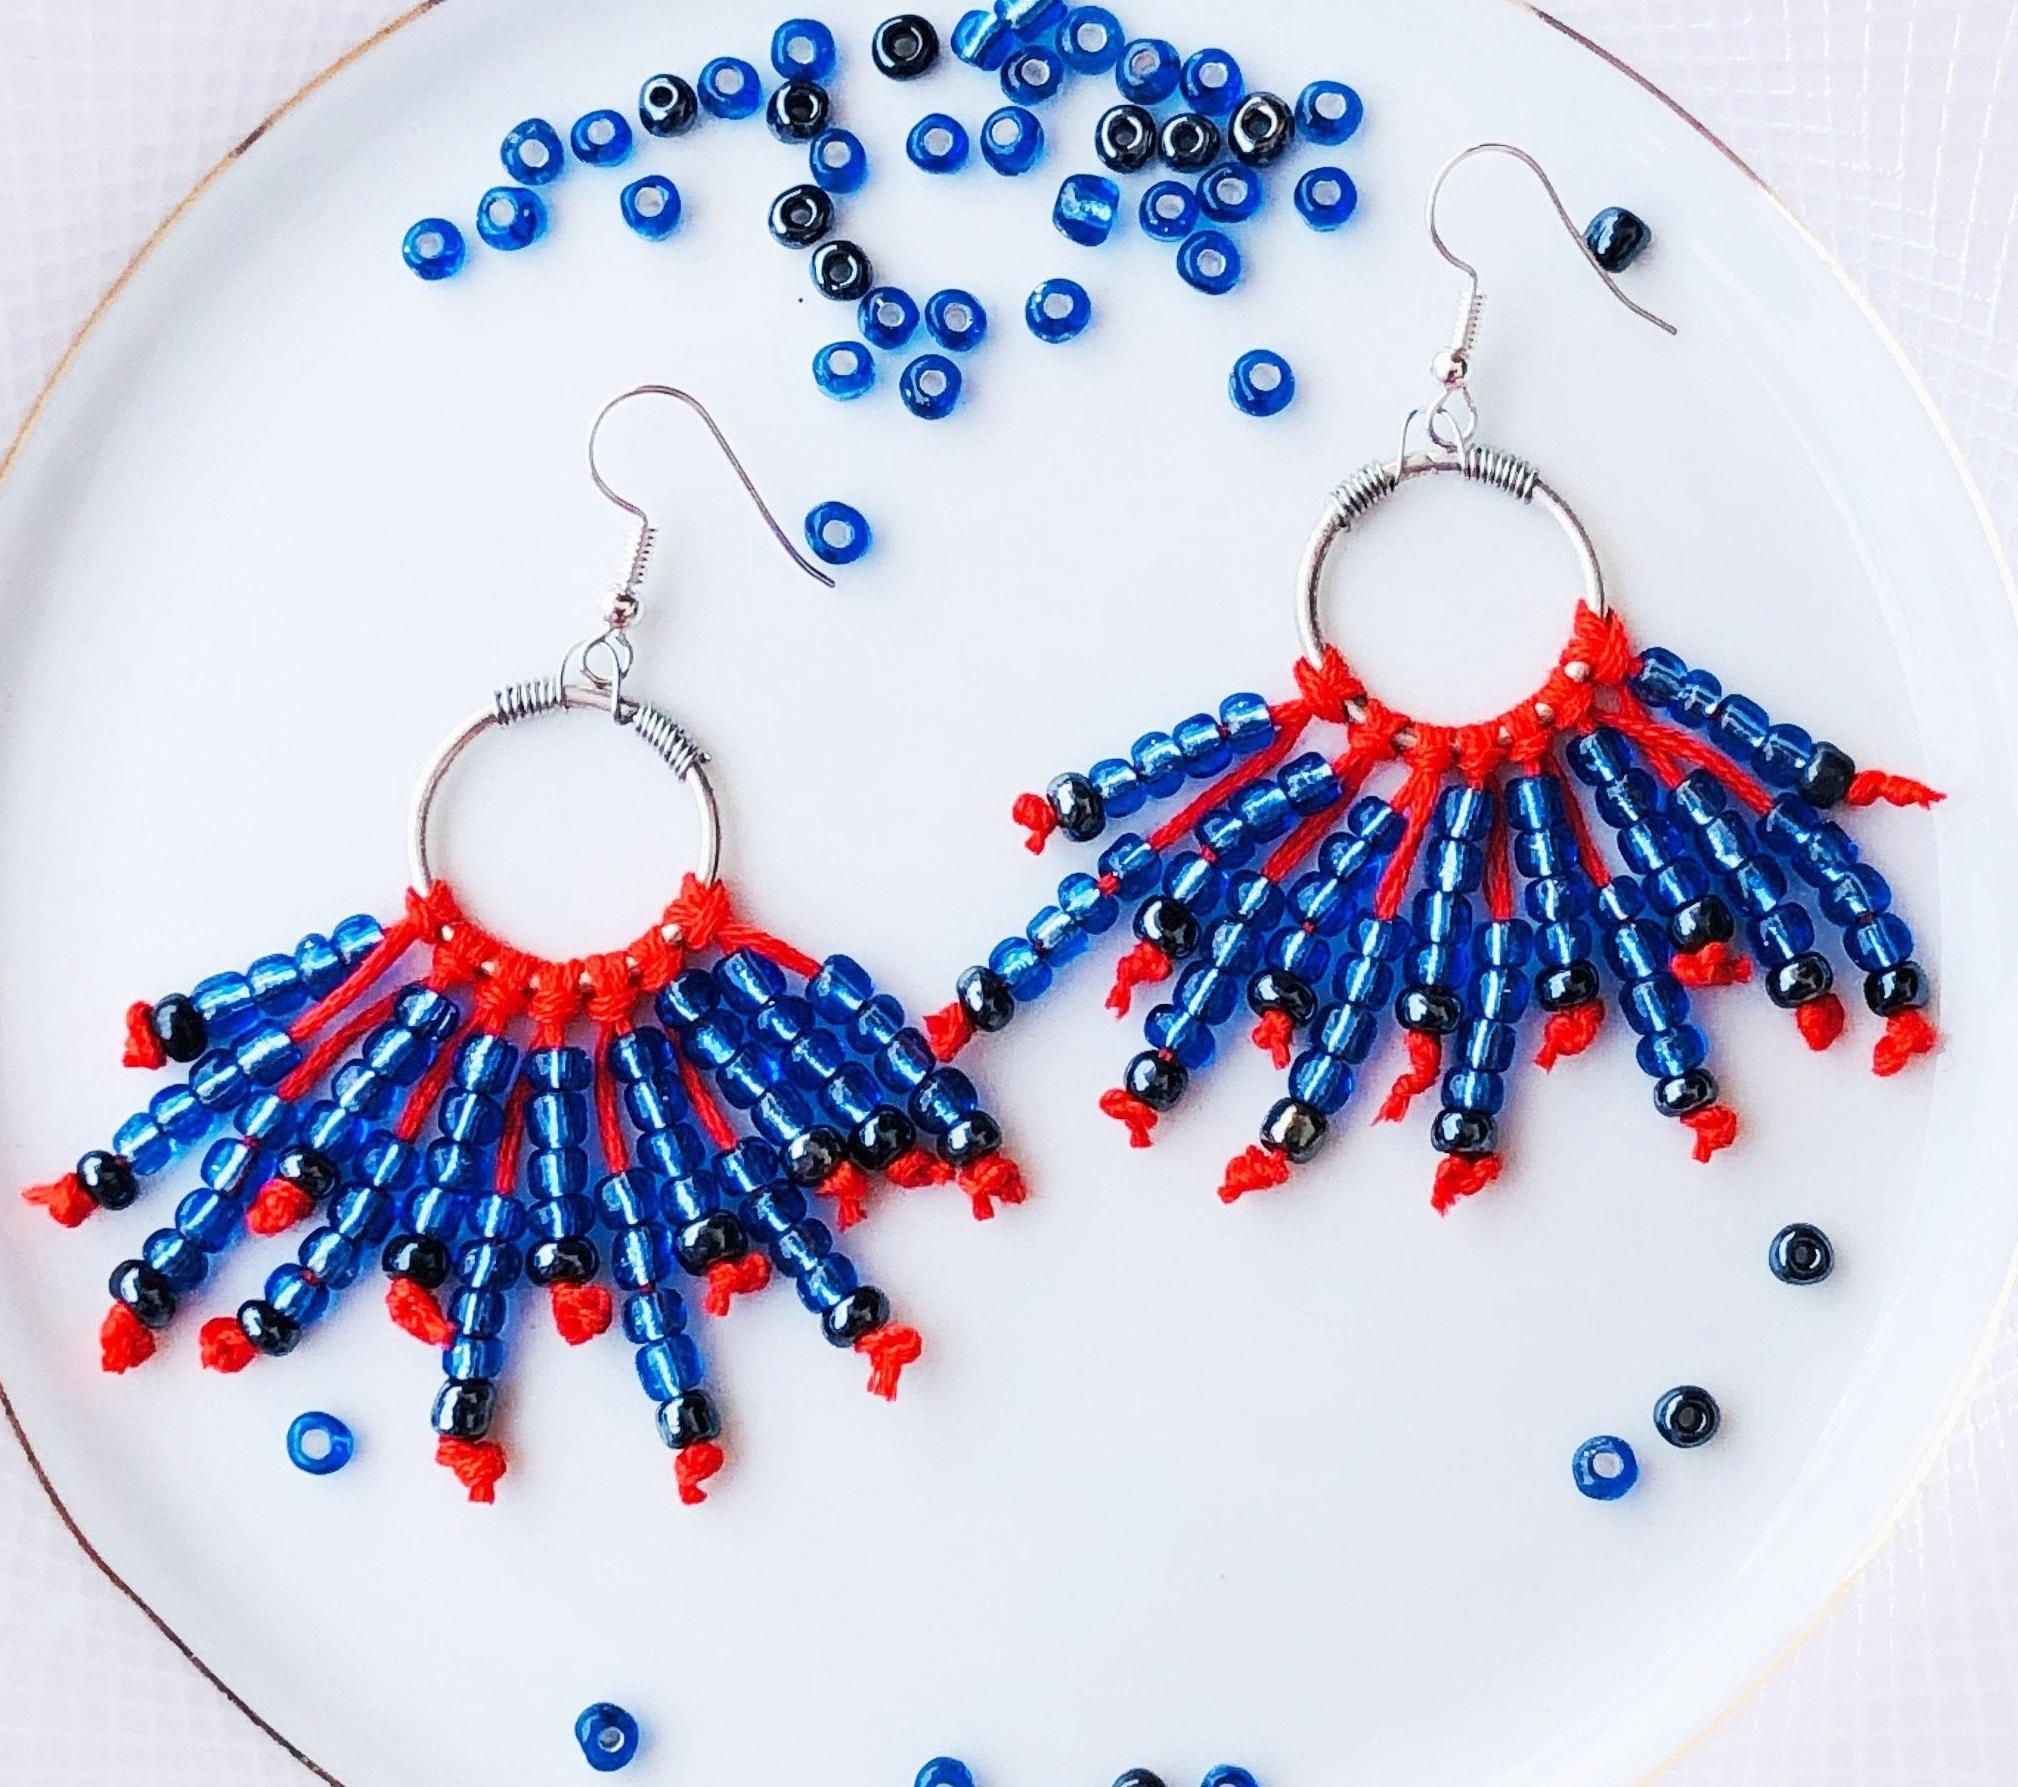 Blue Seed Beads & Orange Thread Fringe Earrings For Women